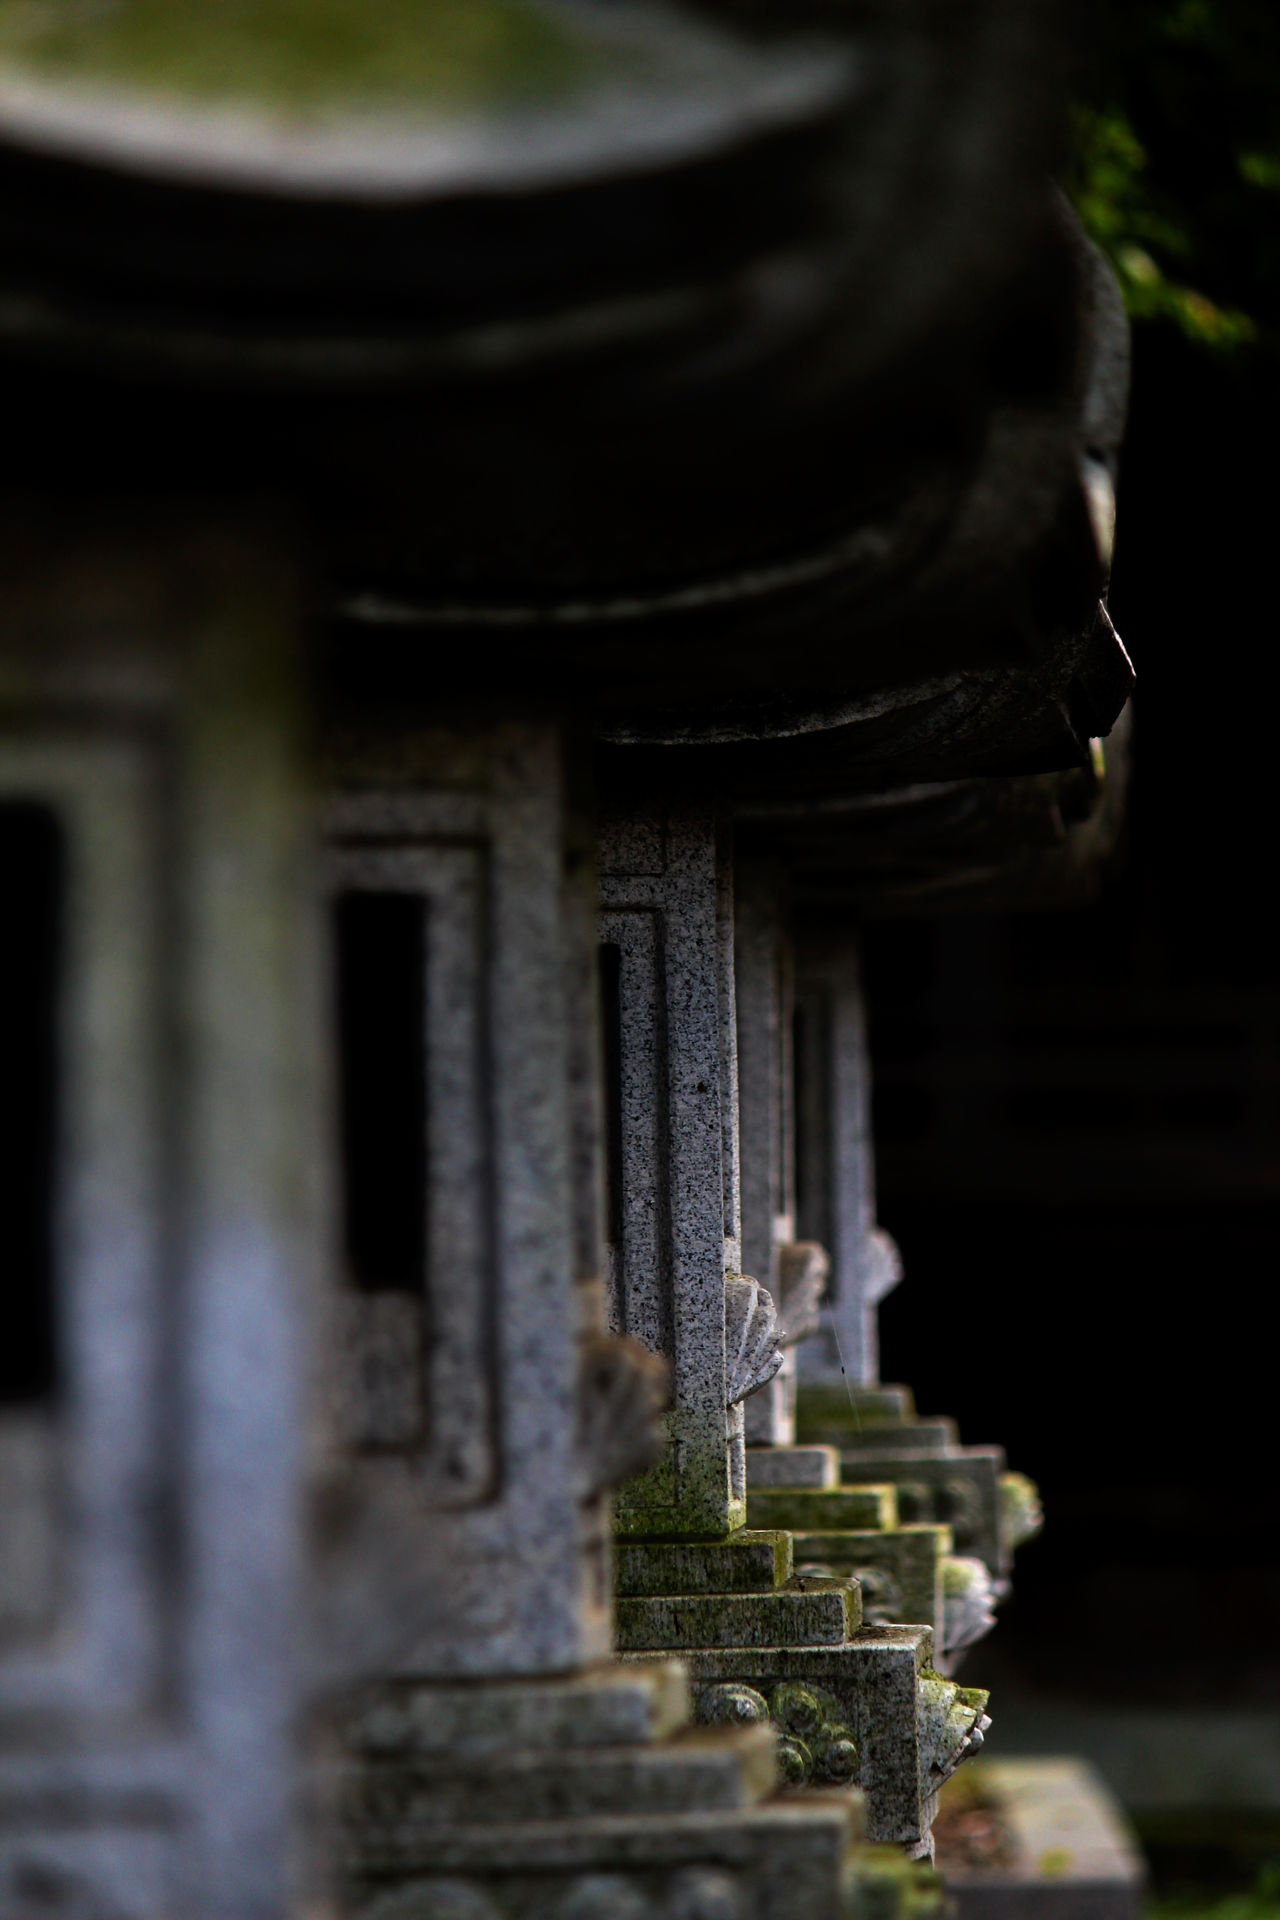 EyeEm Gallery Getting Inspired Historic Japan Light And Shadow Moss Shrine Stone Lanterns Taking Pictures